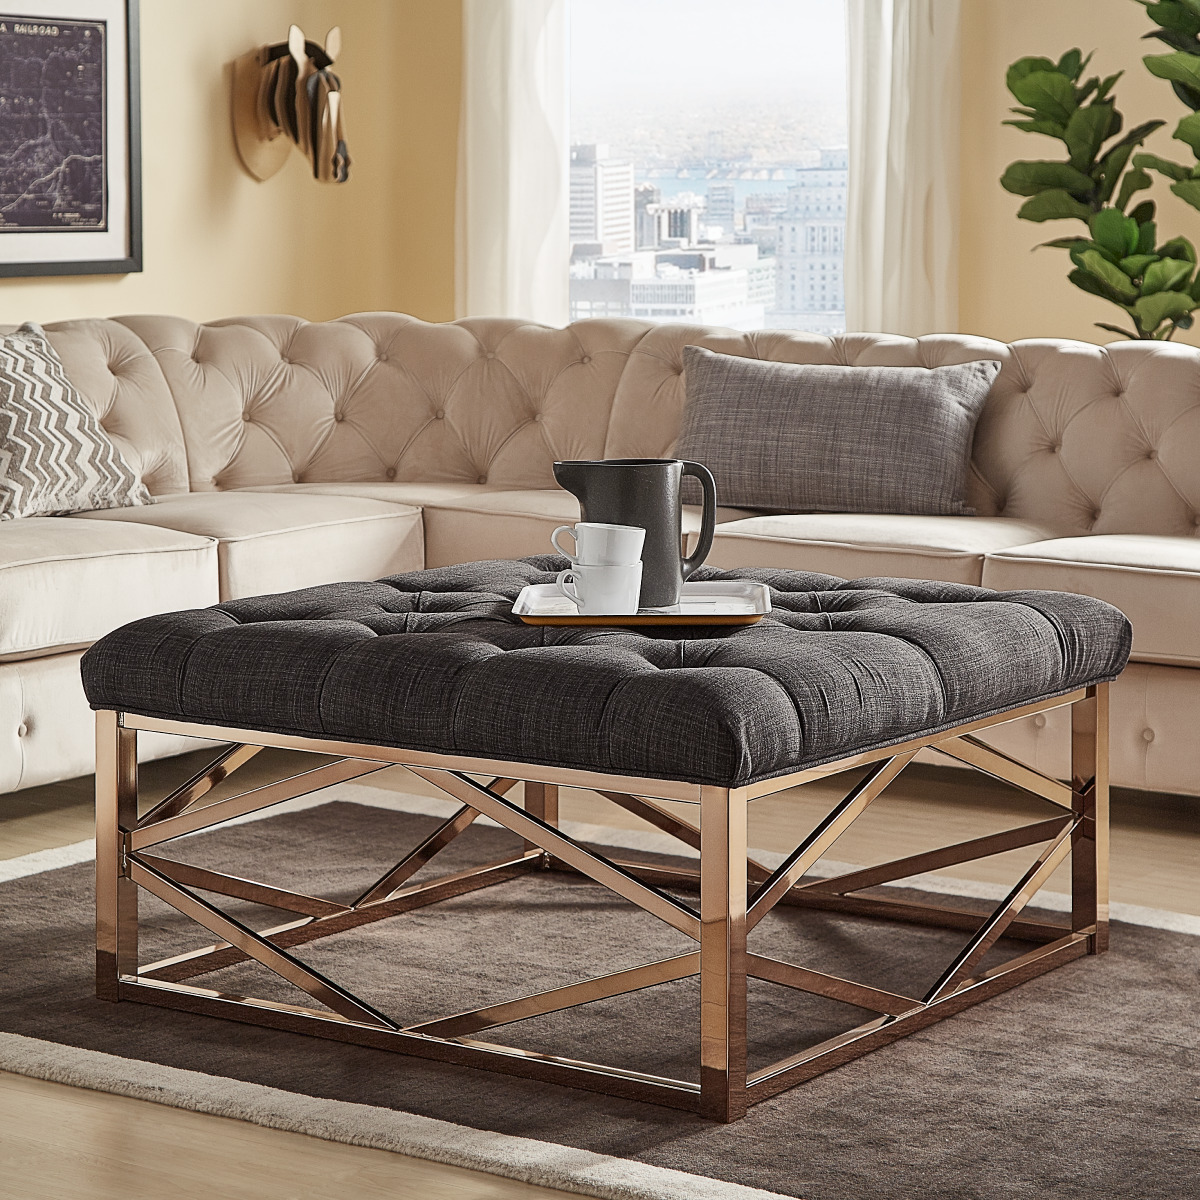 Merveilleux Weston Home Libby Button Tufted Cushion Ottoman Coffee Table With Champagne  Gold Geometric Base, Multiple Colors   Walmart.com